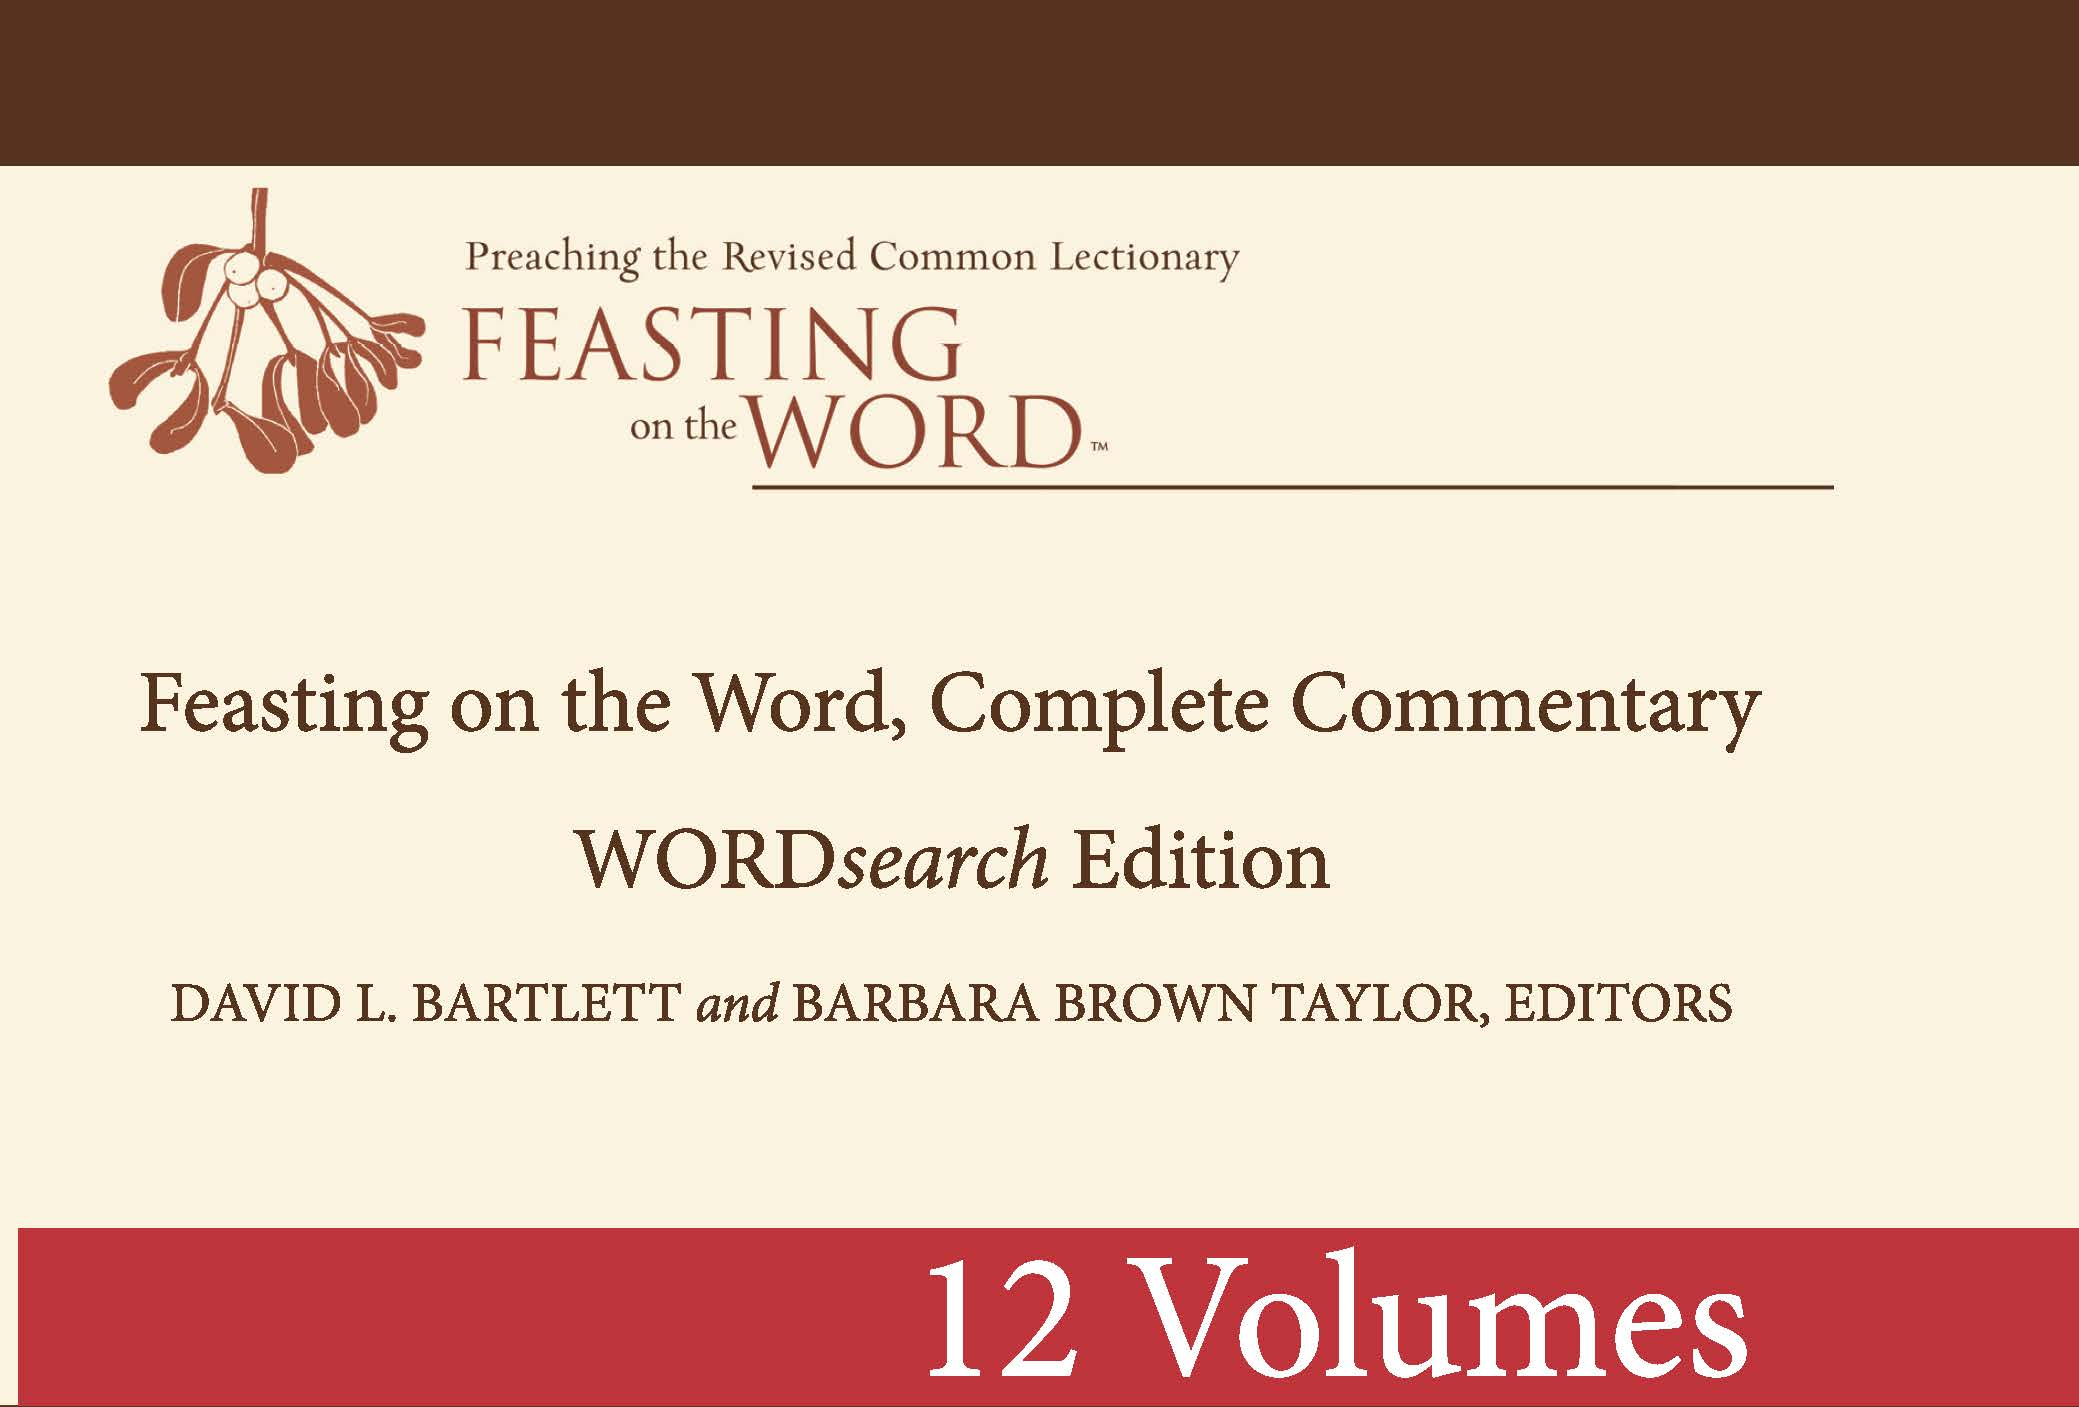 Feasting on the Word, Complete Commentary: WORDsearch Edition